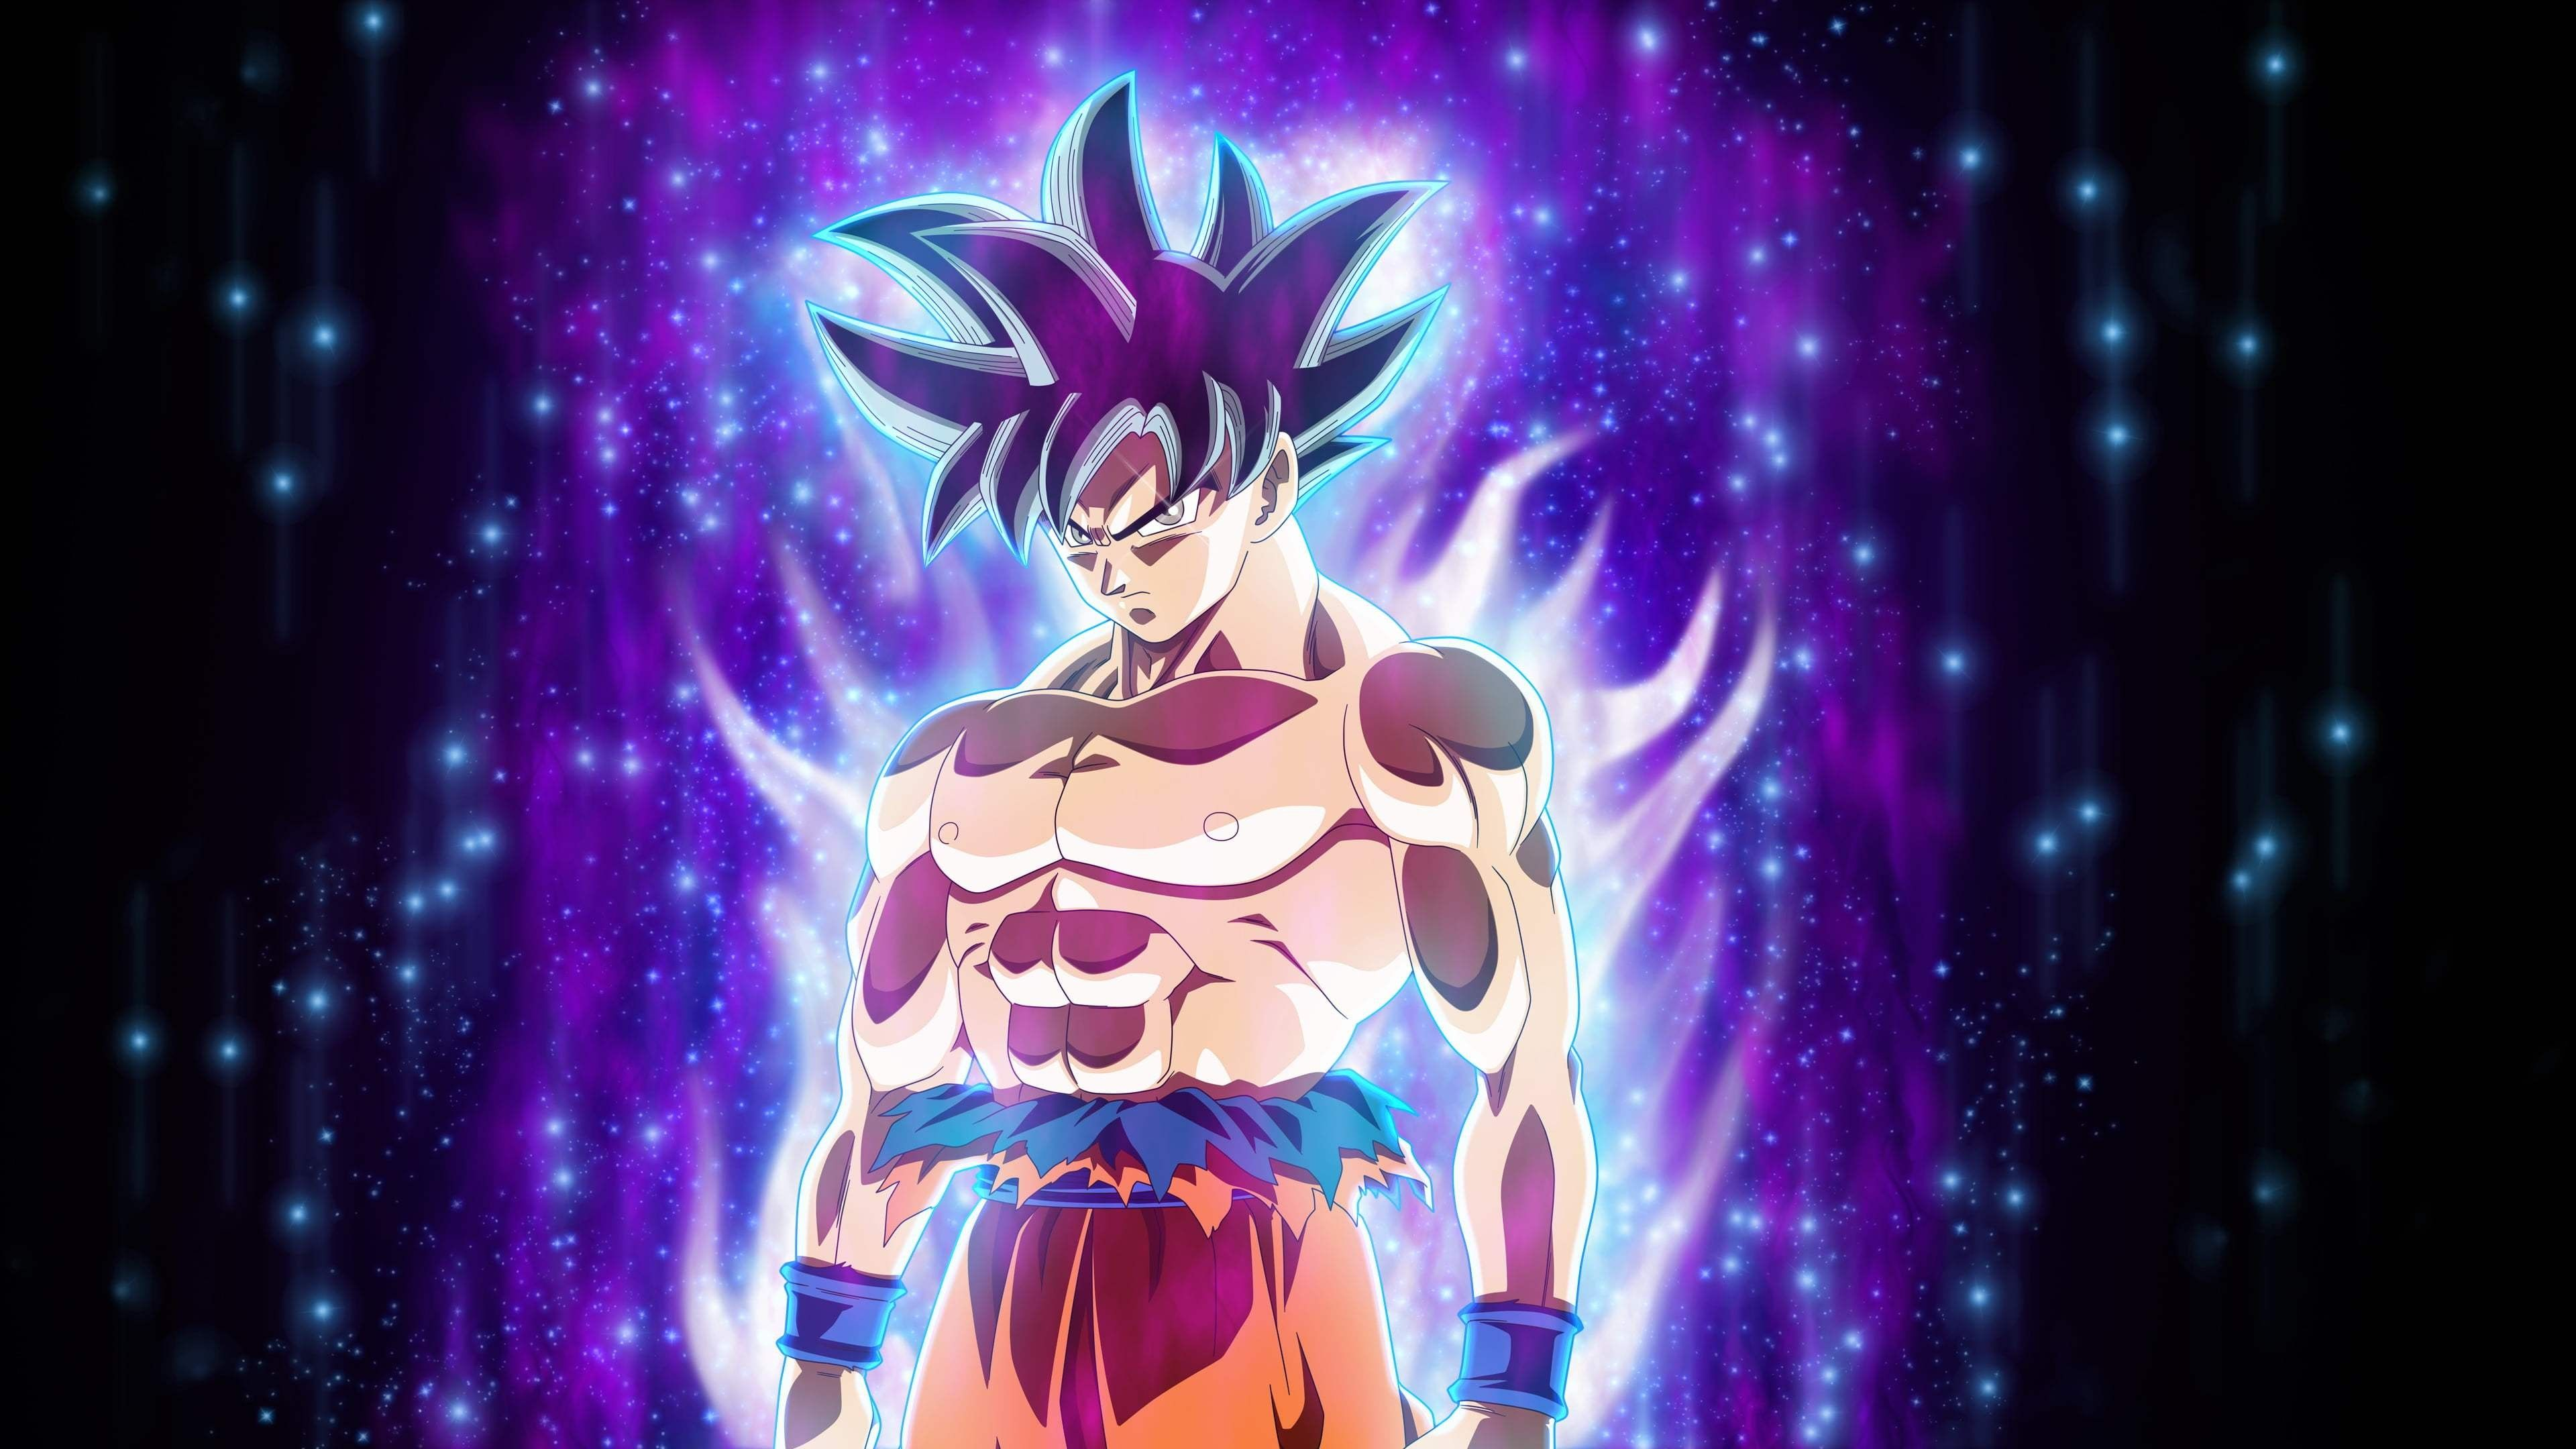 Awesome Goku Live Wallpaper iPhone 6